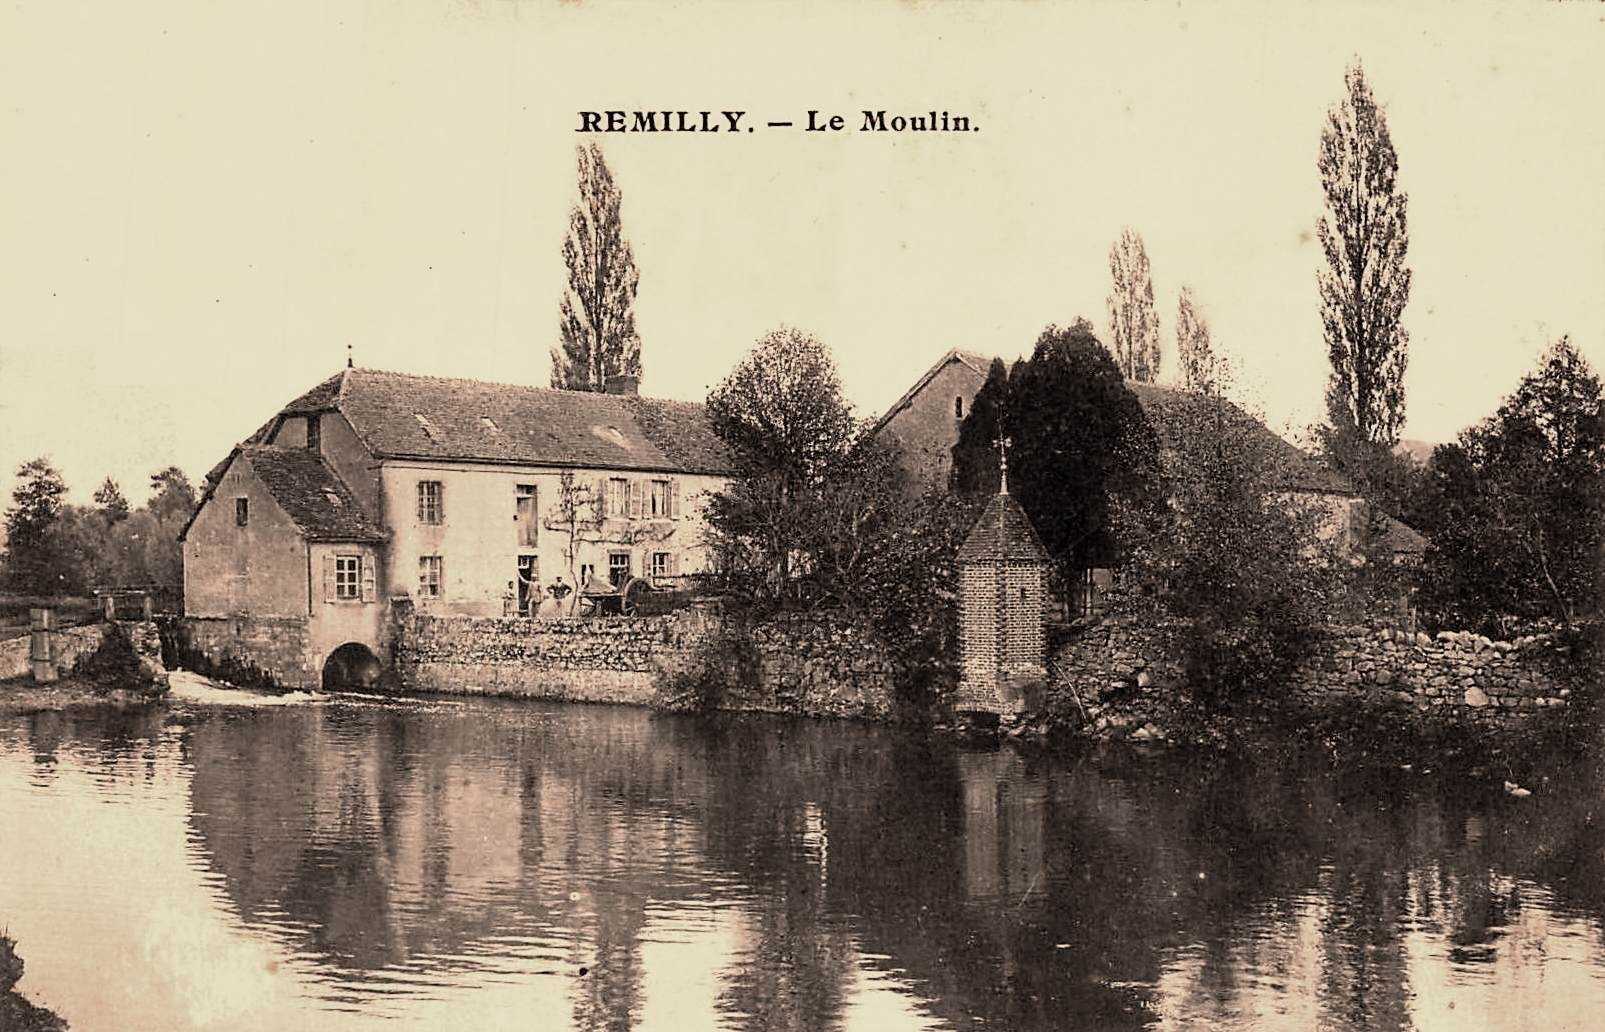 Rémilly (Nièvre) Le moulin CPA